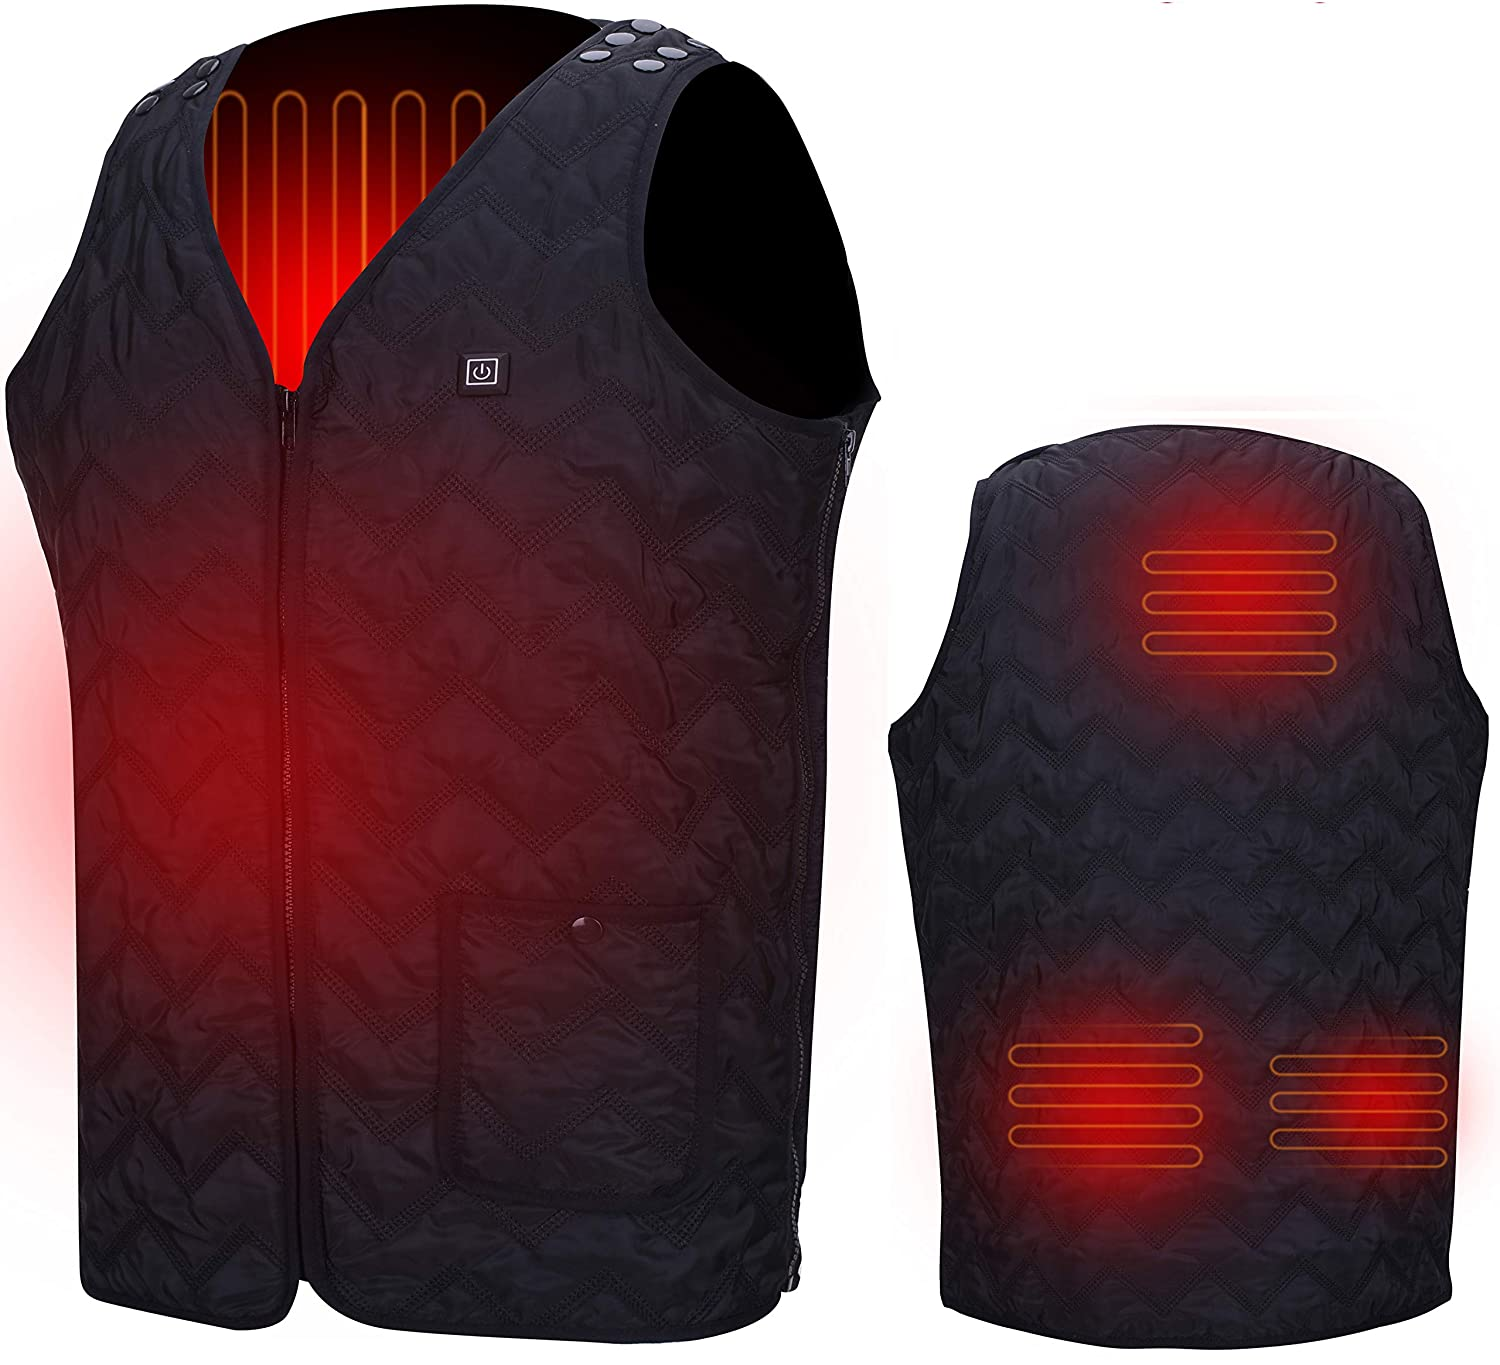 Heated Vest USB Electric Heated Vest Size Adjustable USB Charging Heating Vest Clothing for Men and Women (Battery not Included) Black